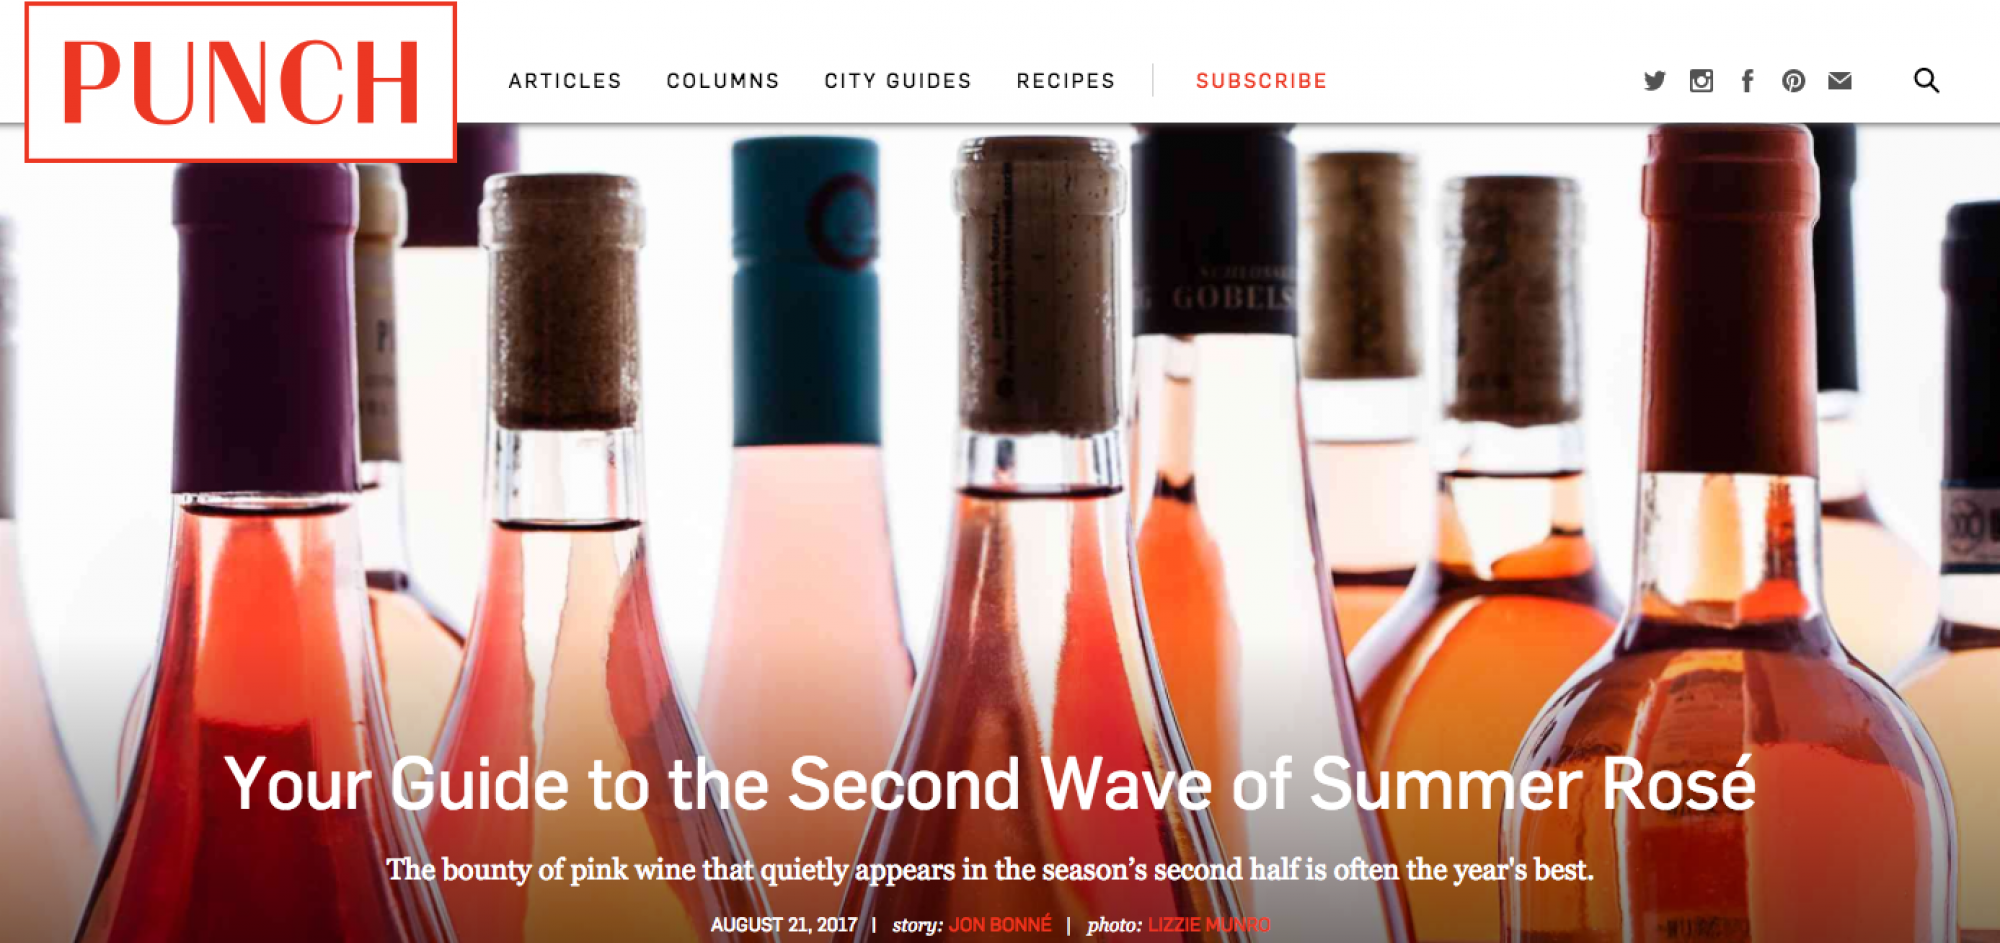 Highlights from Punch's Guide to the Second Wave of Summer Rose